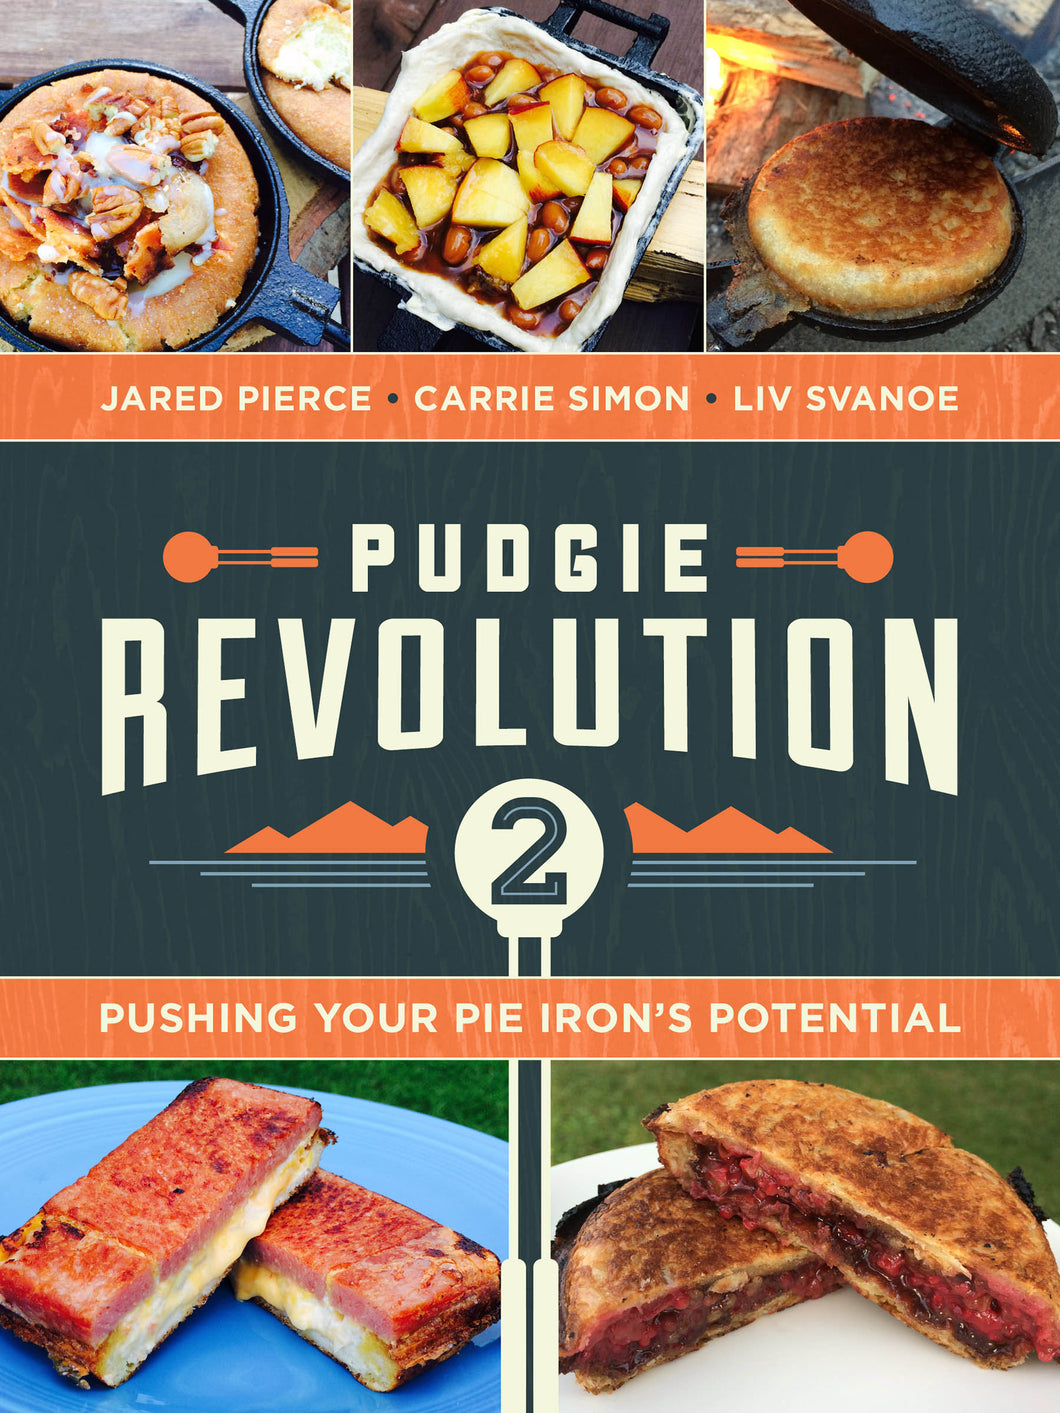 Pudgie Revolution 2 - Pushing Your Pie Iron's Potential - Written by Liv Svanoe, Carrie Simon, Jared Pierce